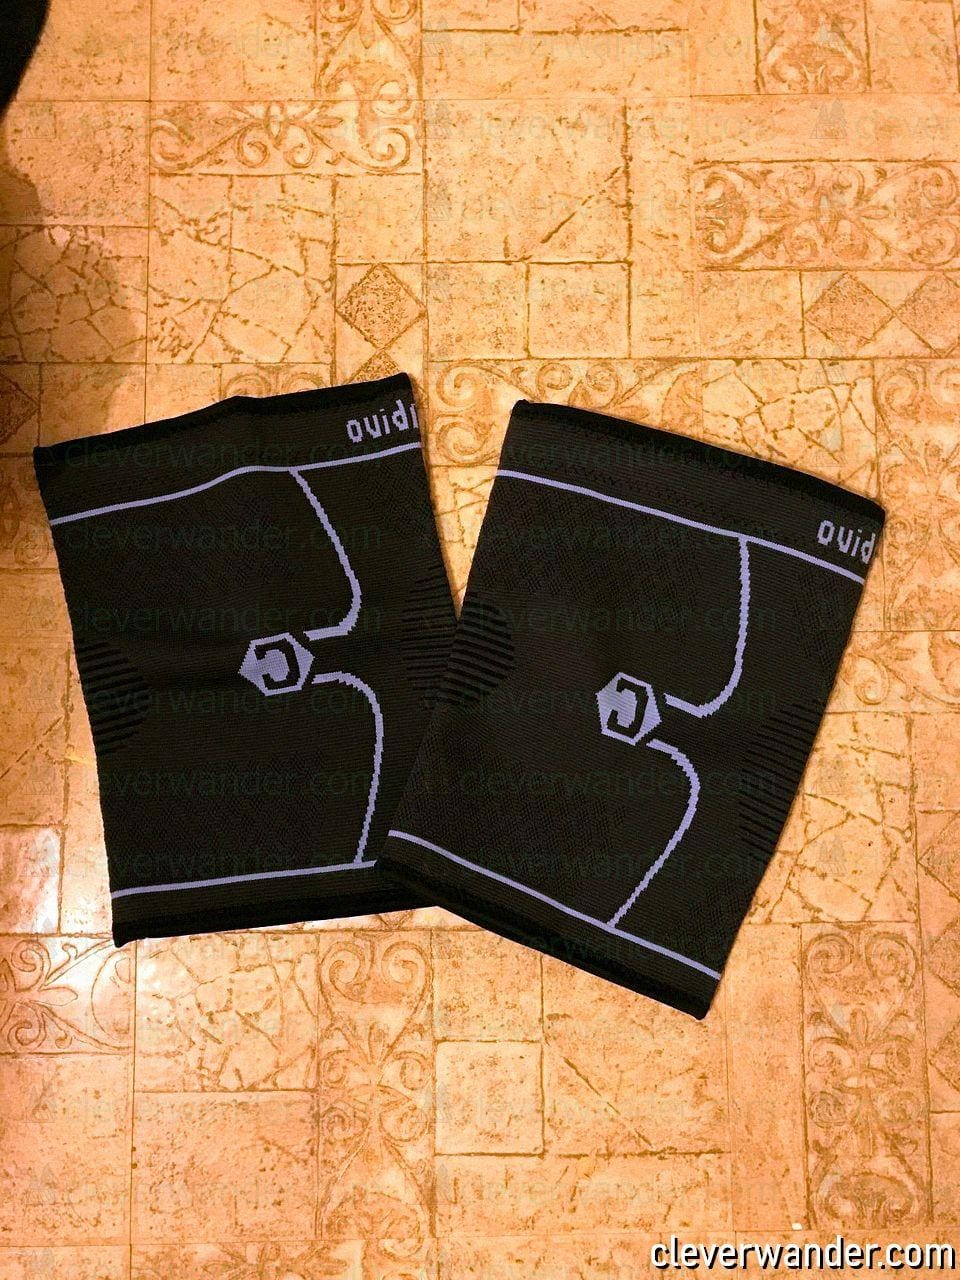 Cambivo 2 pack Knee Brace - image review 4